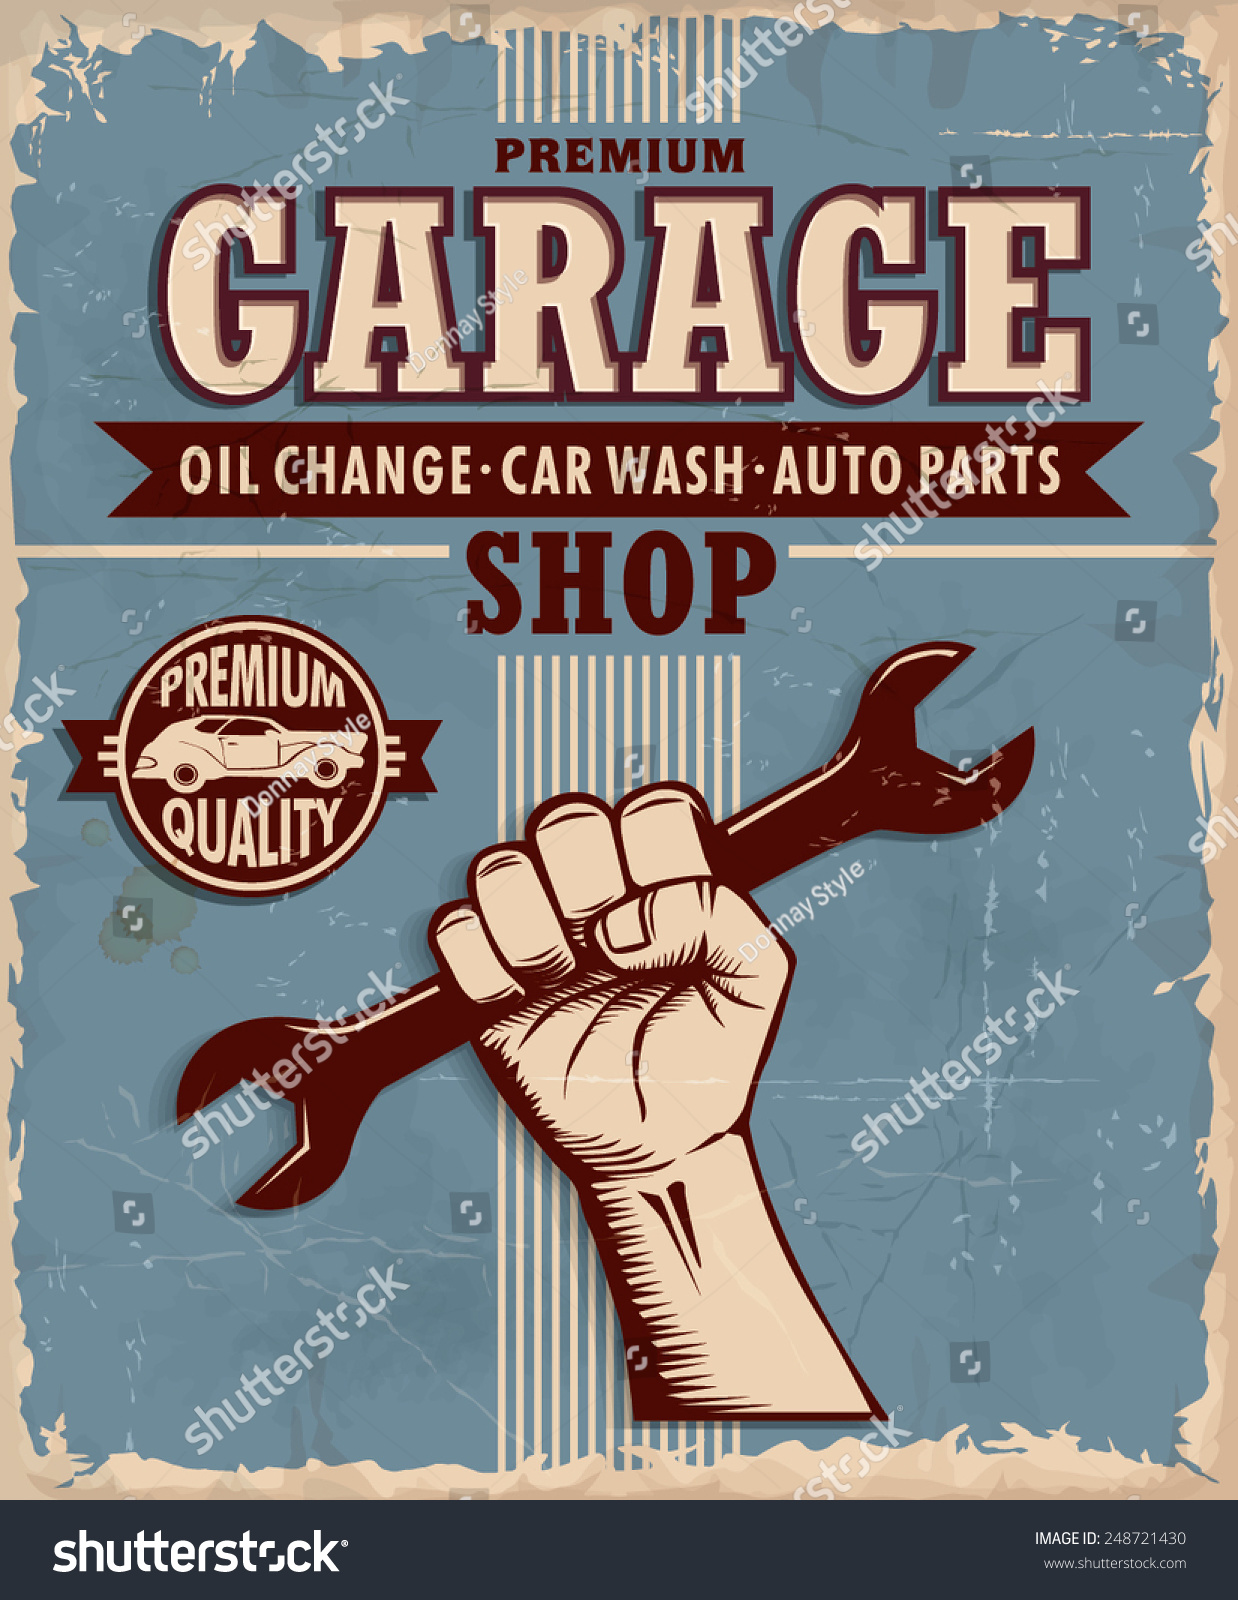 Parts of a poster design - Vintage Garage Poster Design